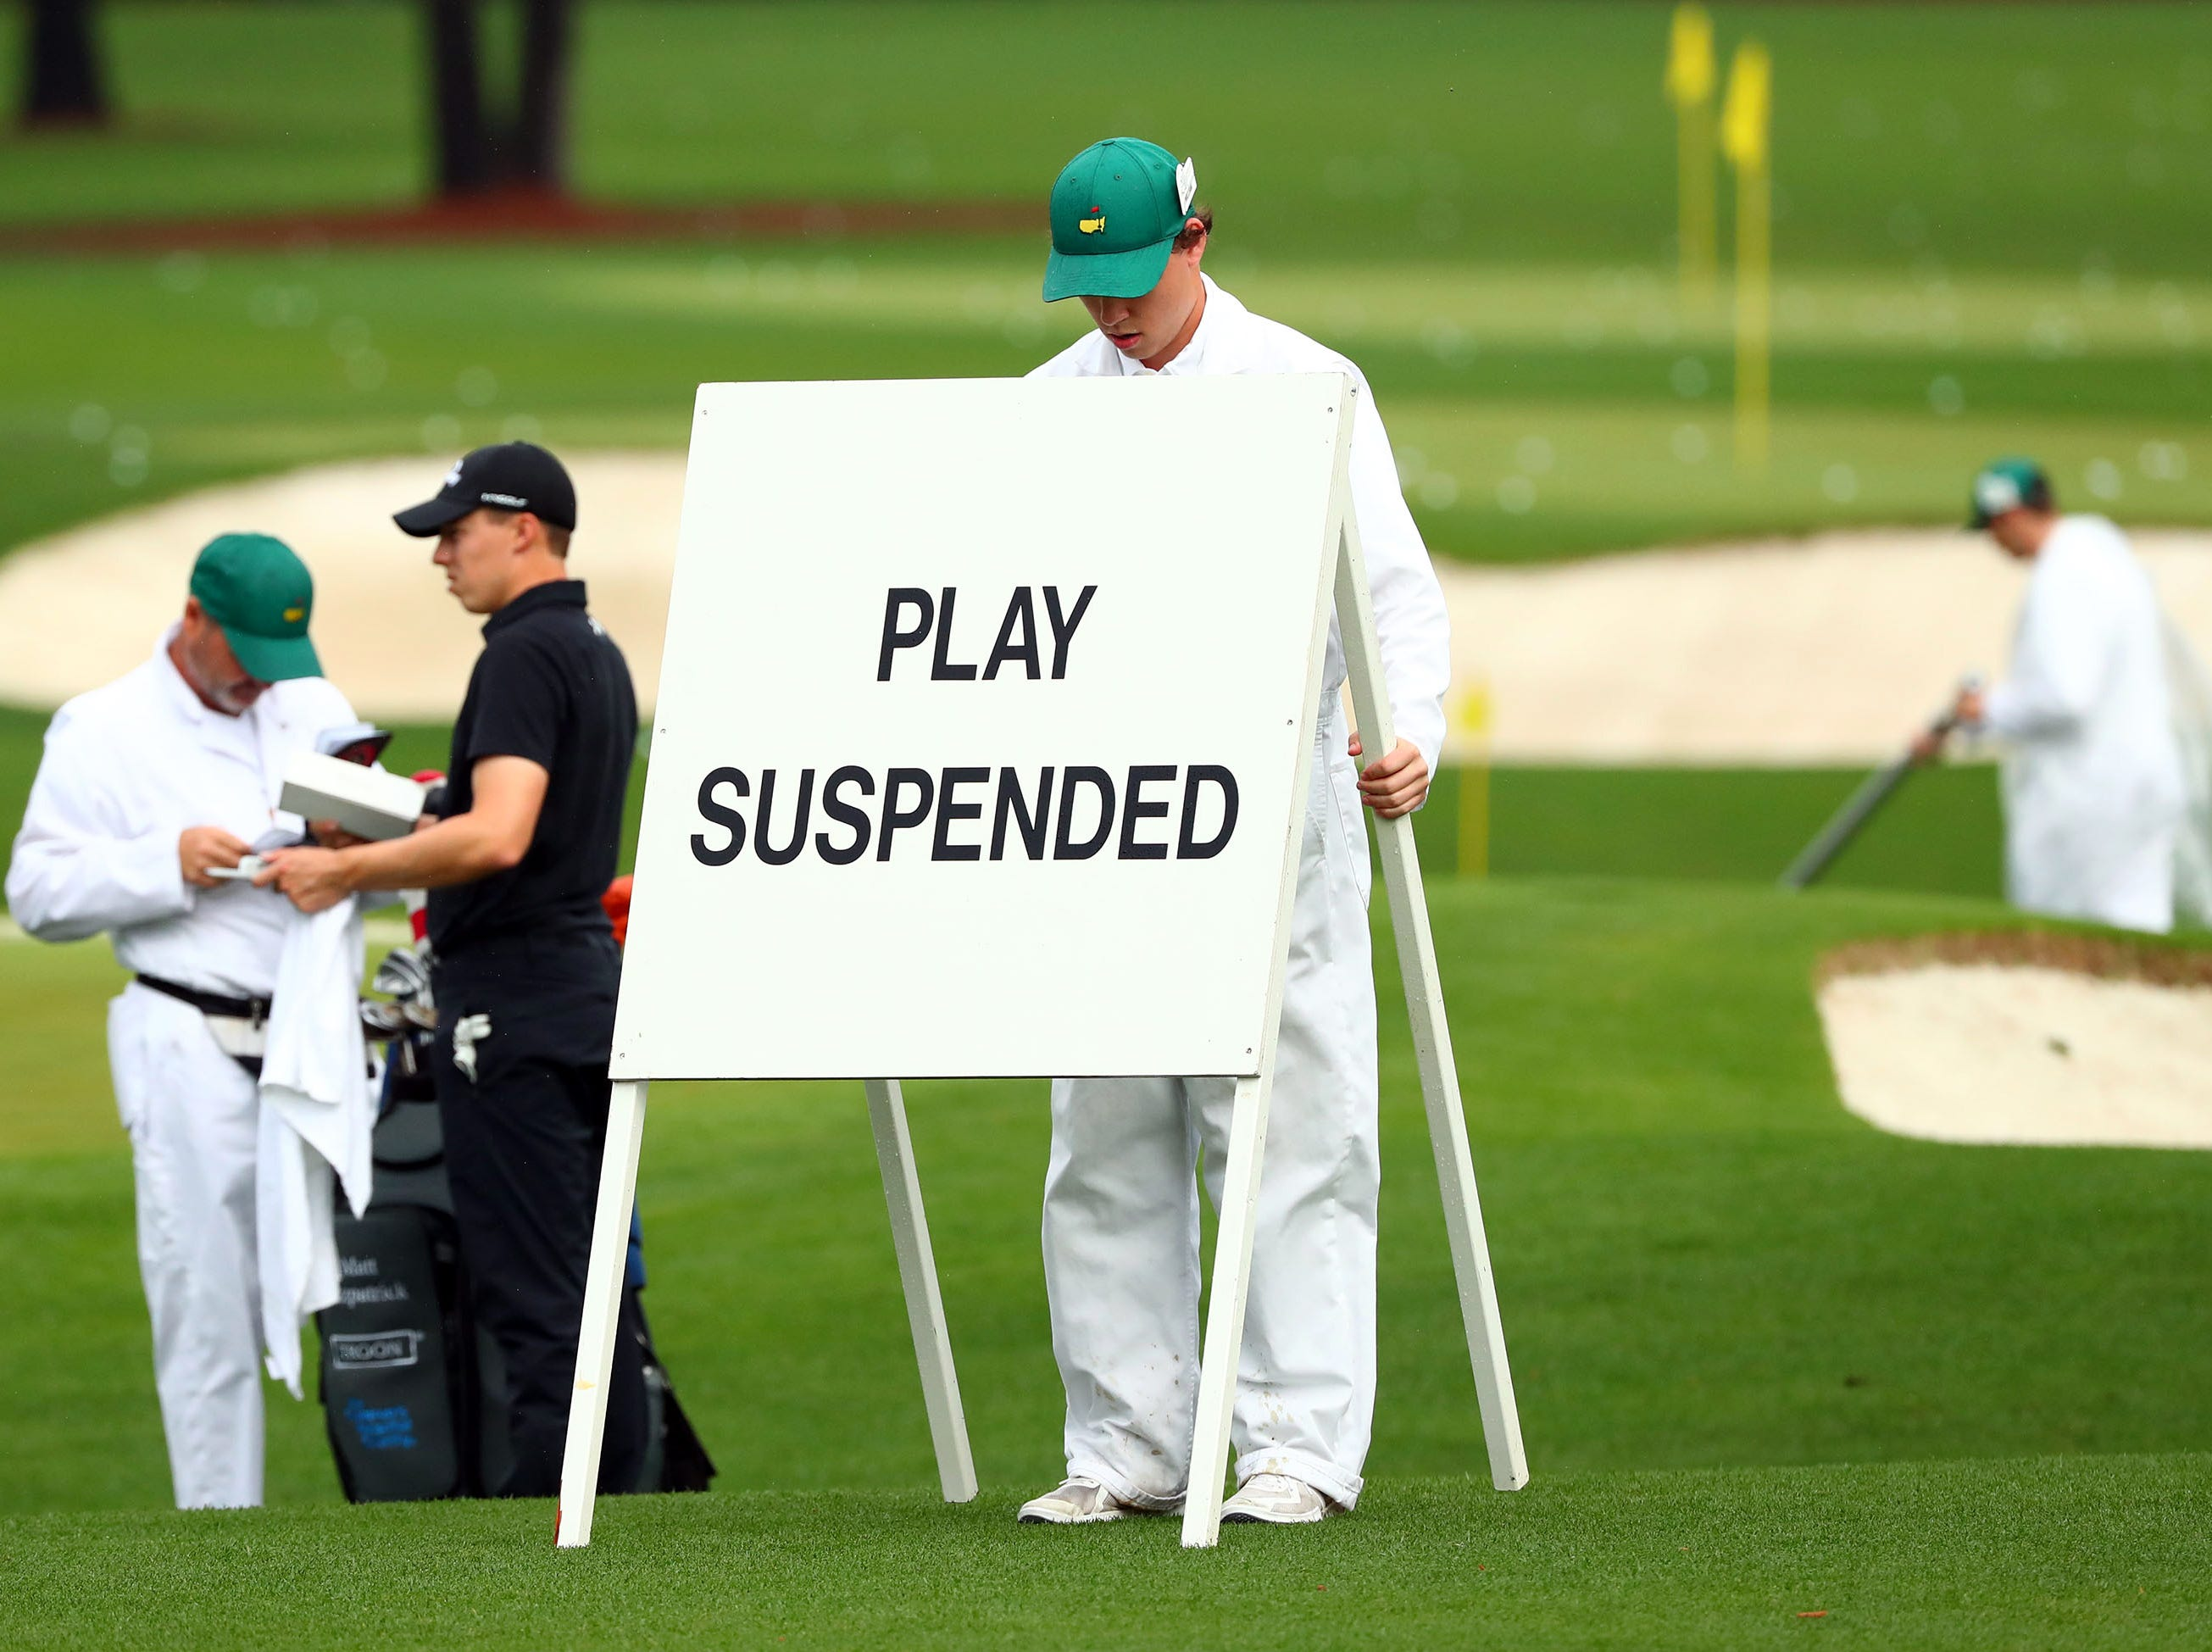 Apr 9, 2019; Augusta, GA, USA; Matthew Fitzpatrick of England prepares to leave the practice facility after play was suspended at 10:00 AM EST, as thunderstorms travel towards the course during a practice round for The Masters golf tournament at Augusta National Golf Club. Mandatory Credit: Rob Schumacher-USA TODAY Sports